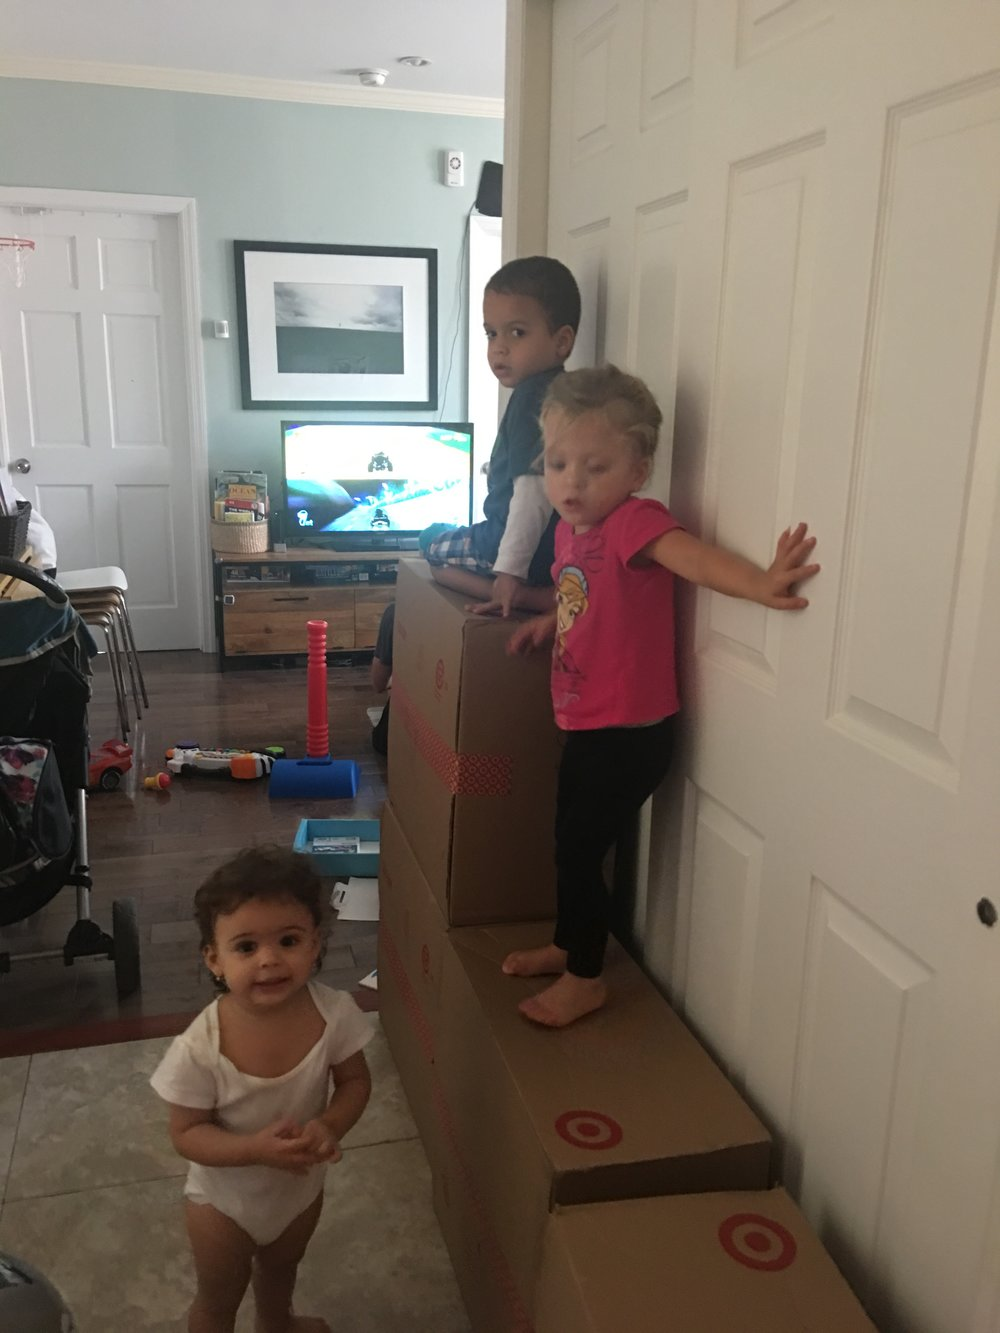 Lucas teaching Lucie and Camila all the crazy cool places to climb.